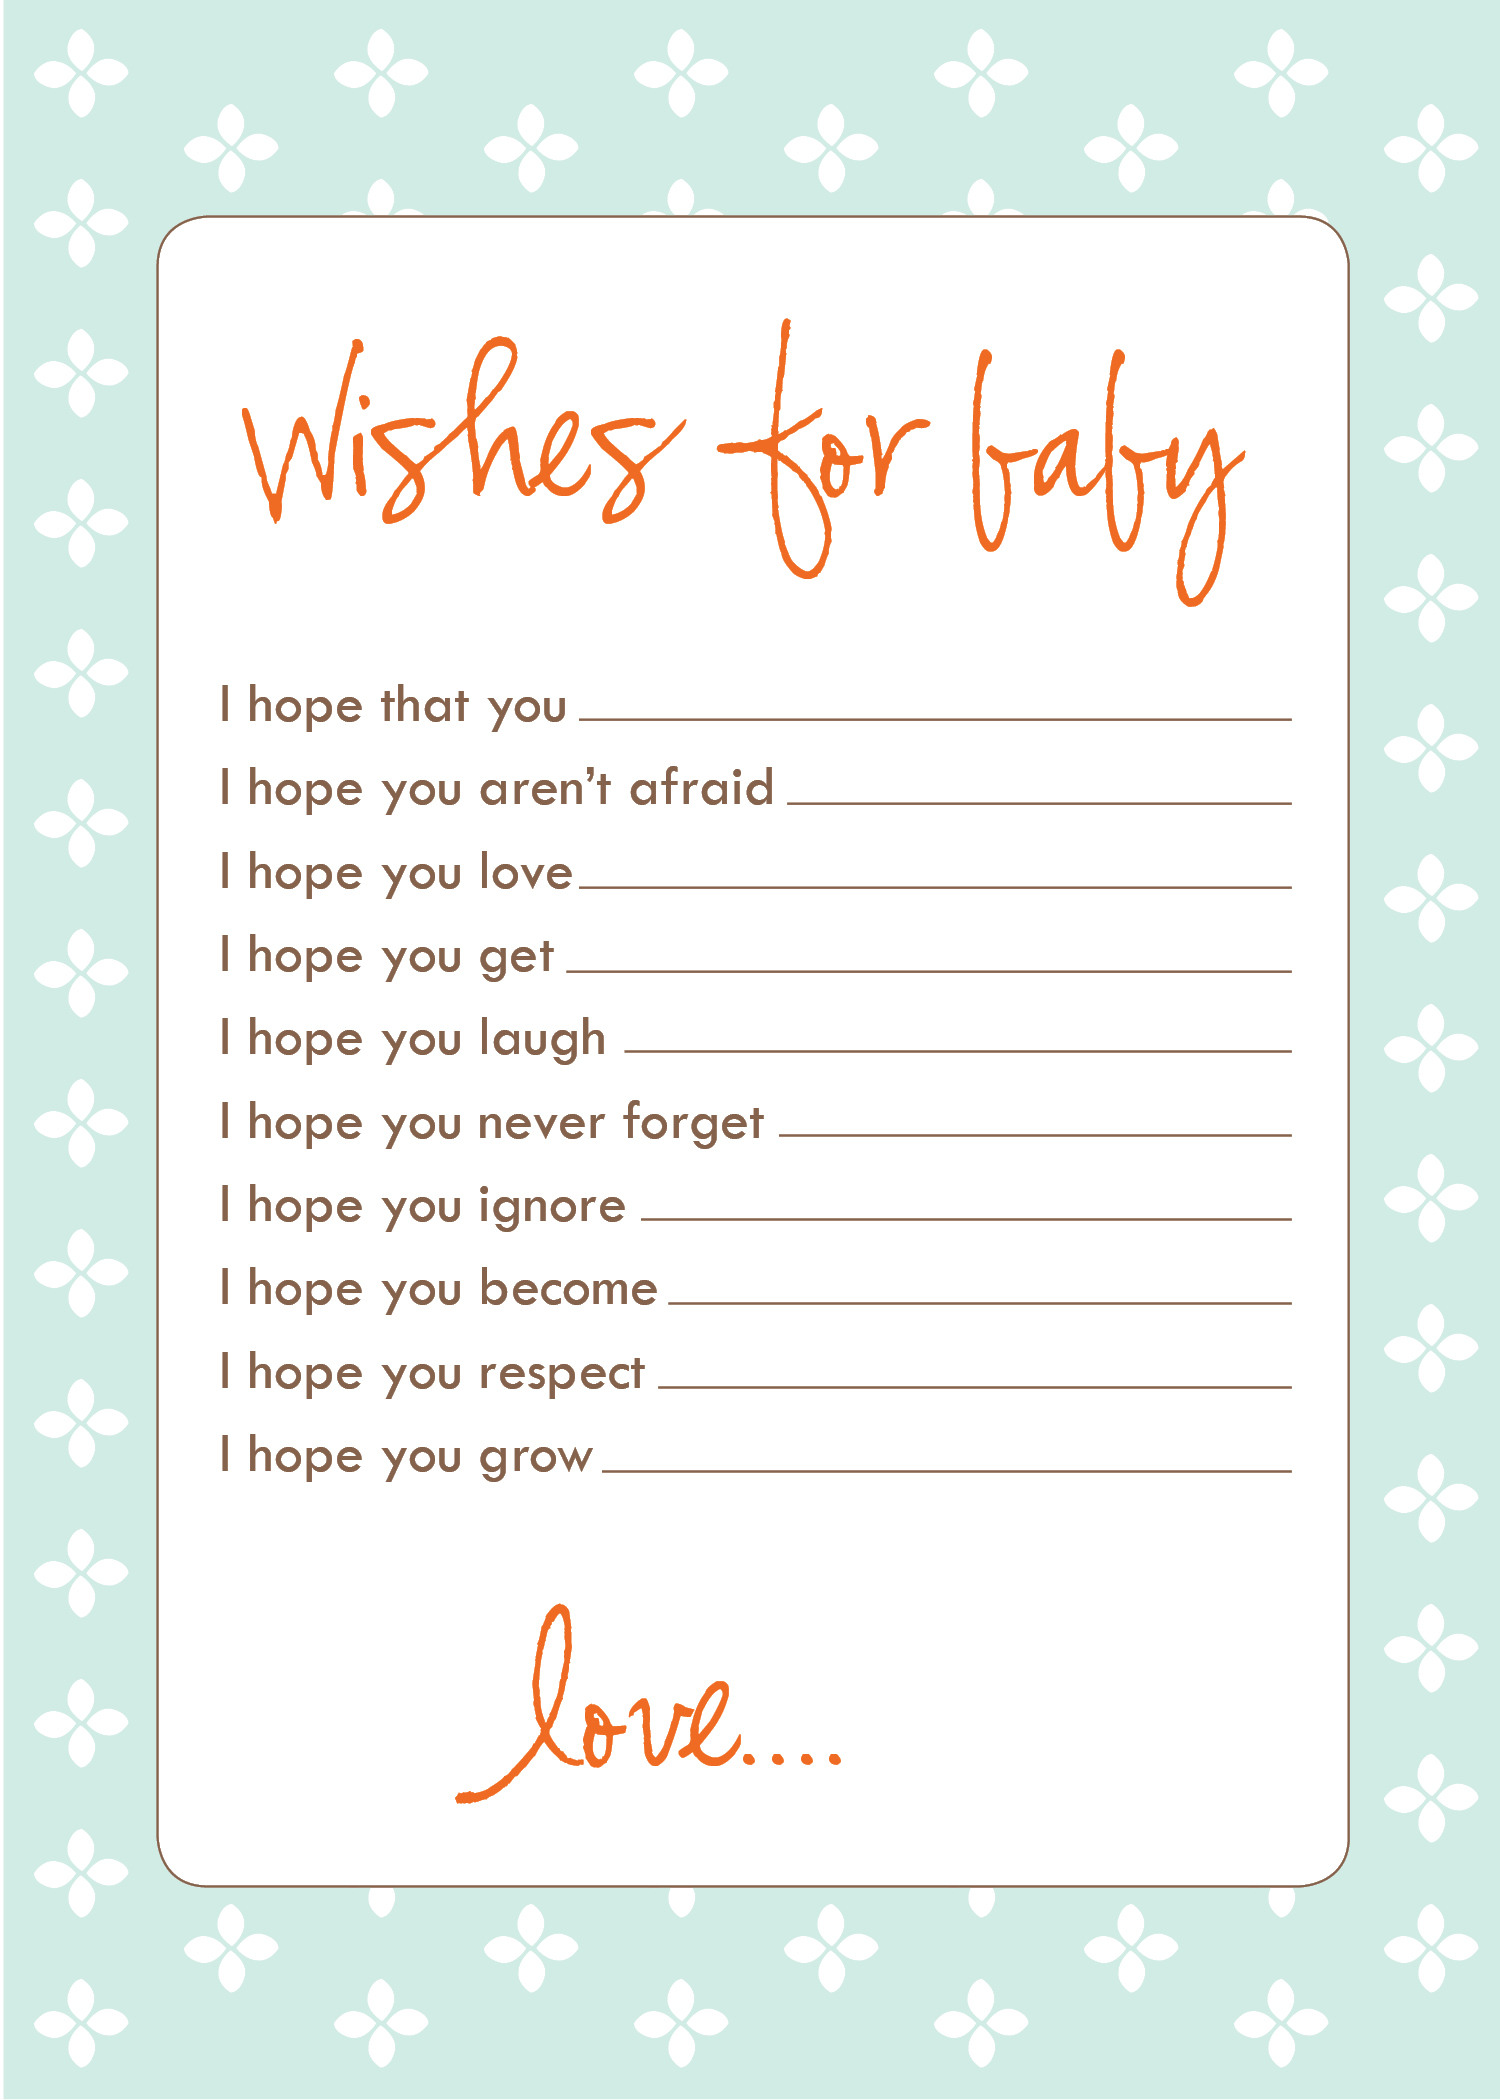 download your own free wish cards for showers or your own keepsake i